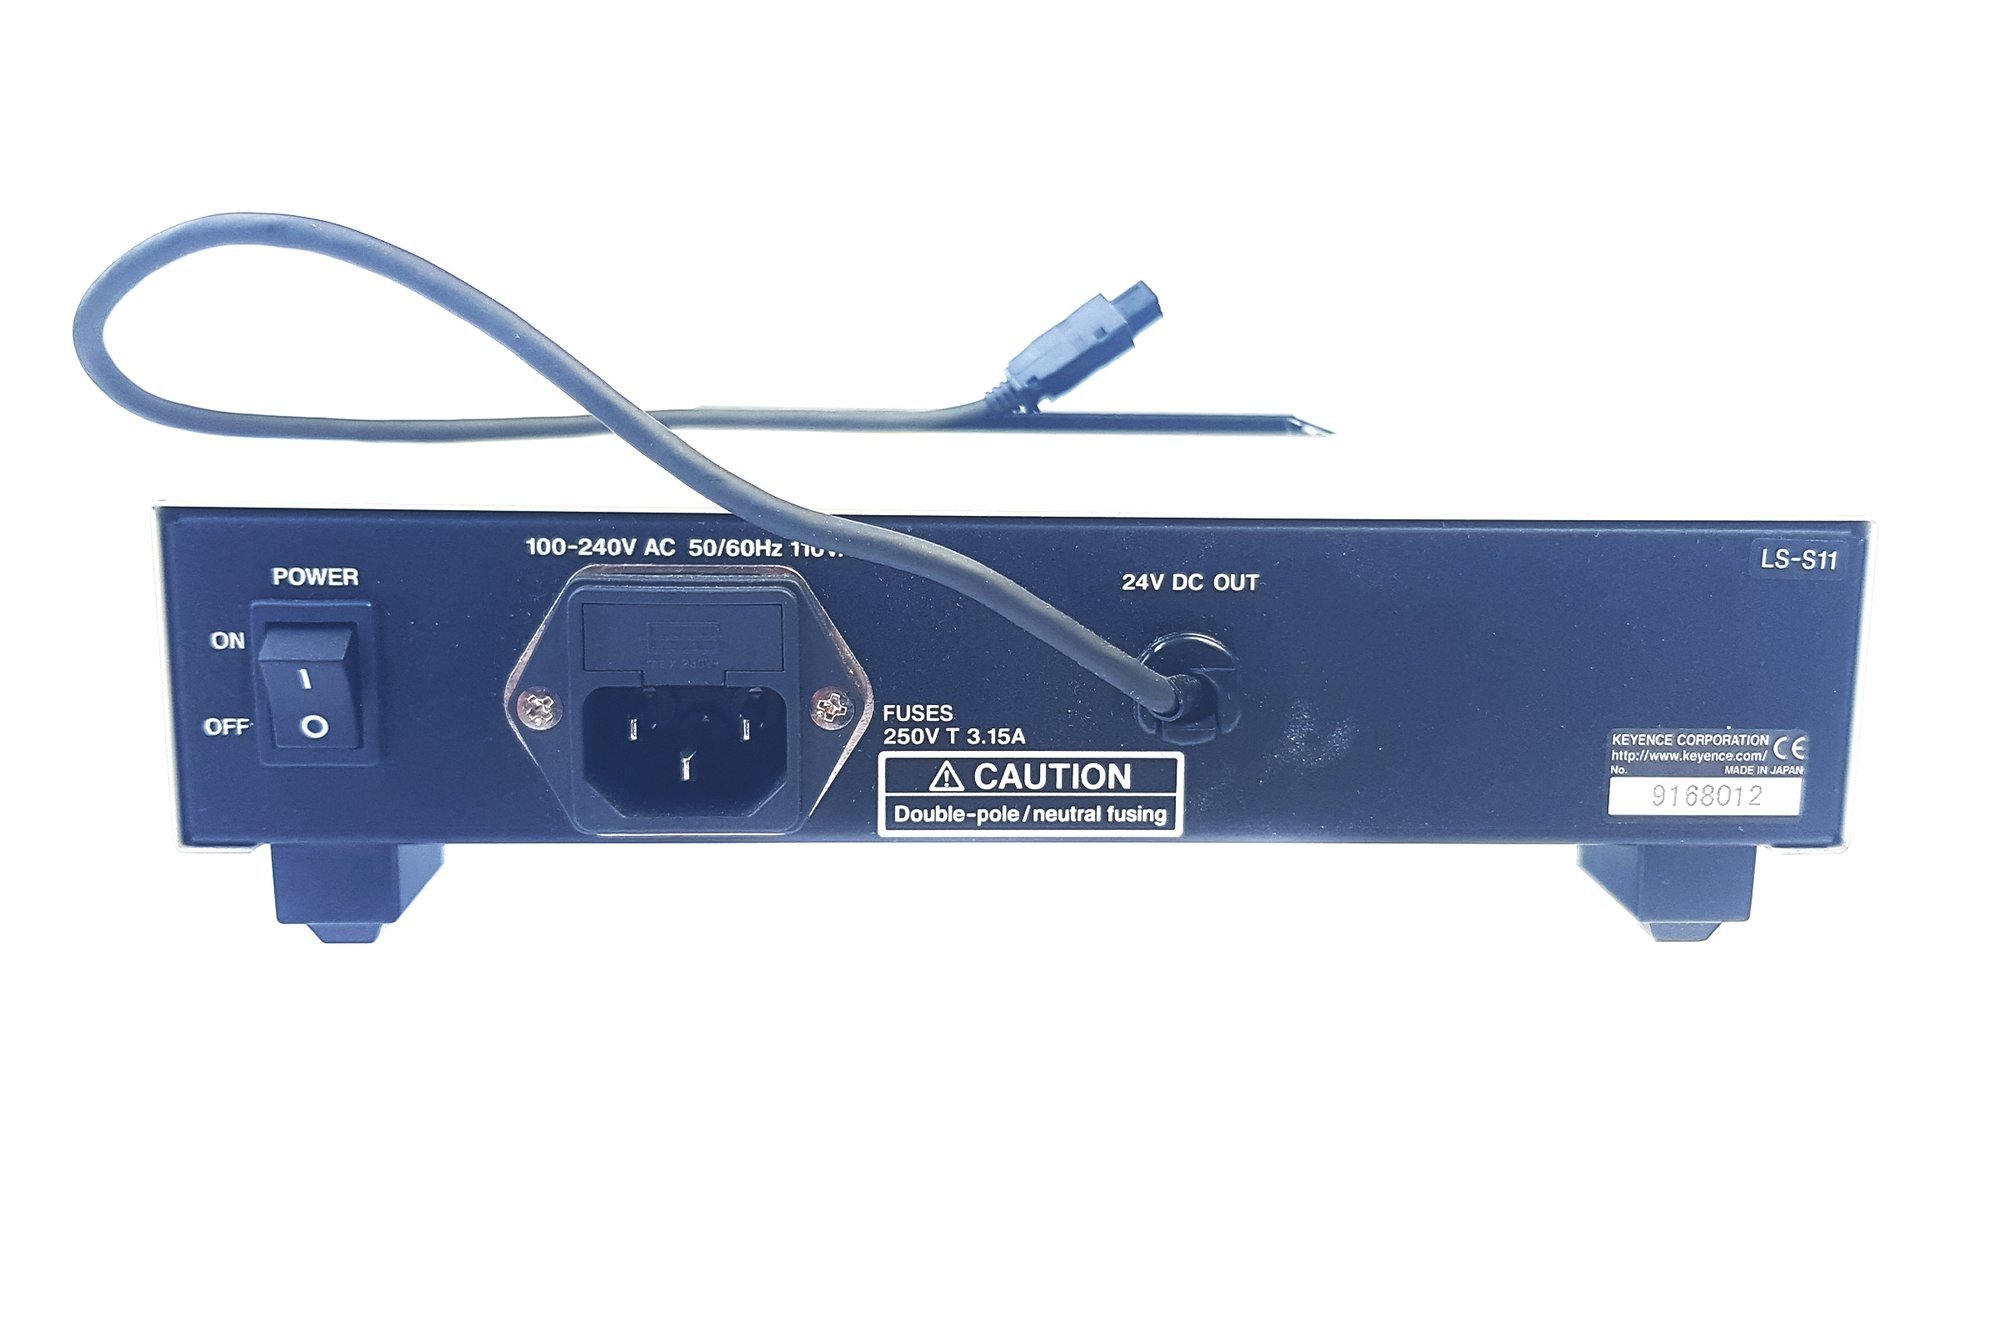 Keyence Power Supply Stand, without Power Cable LS-S11